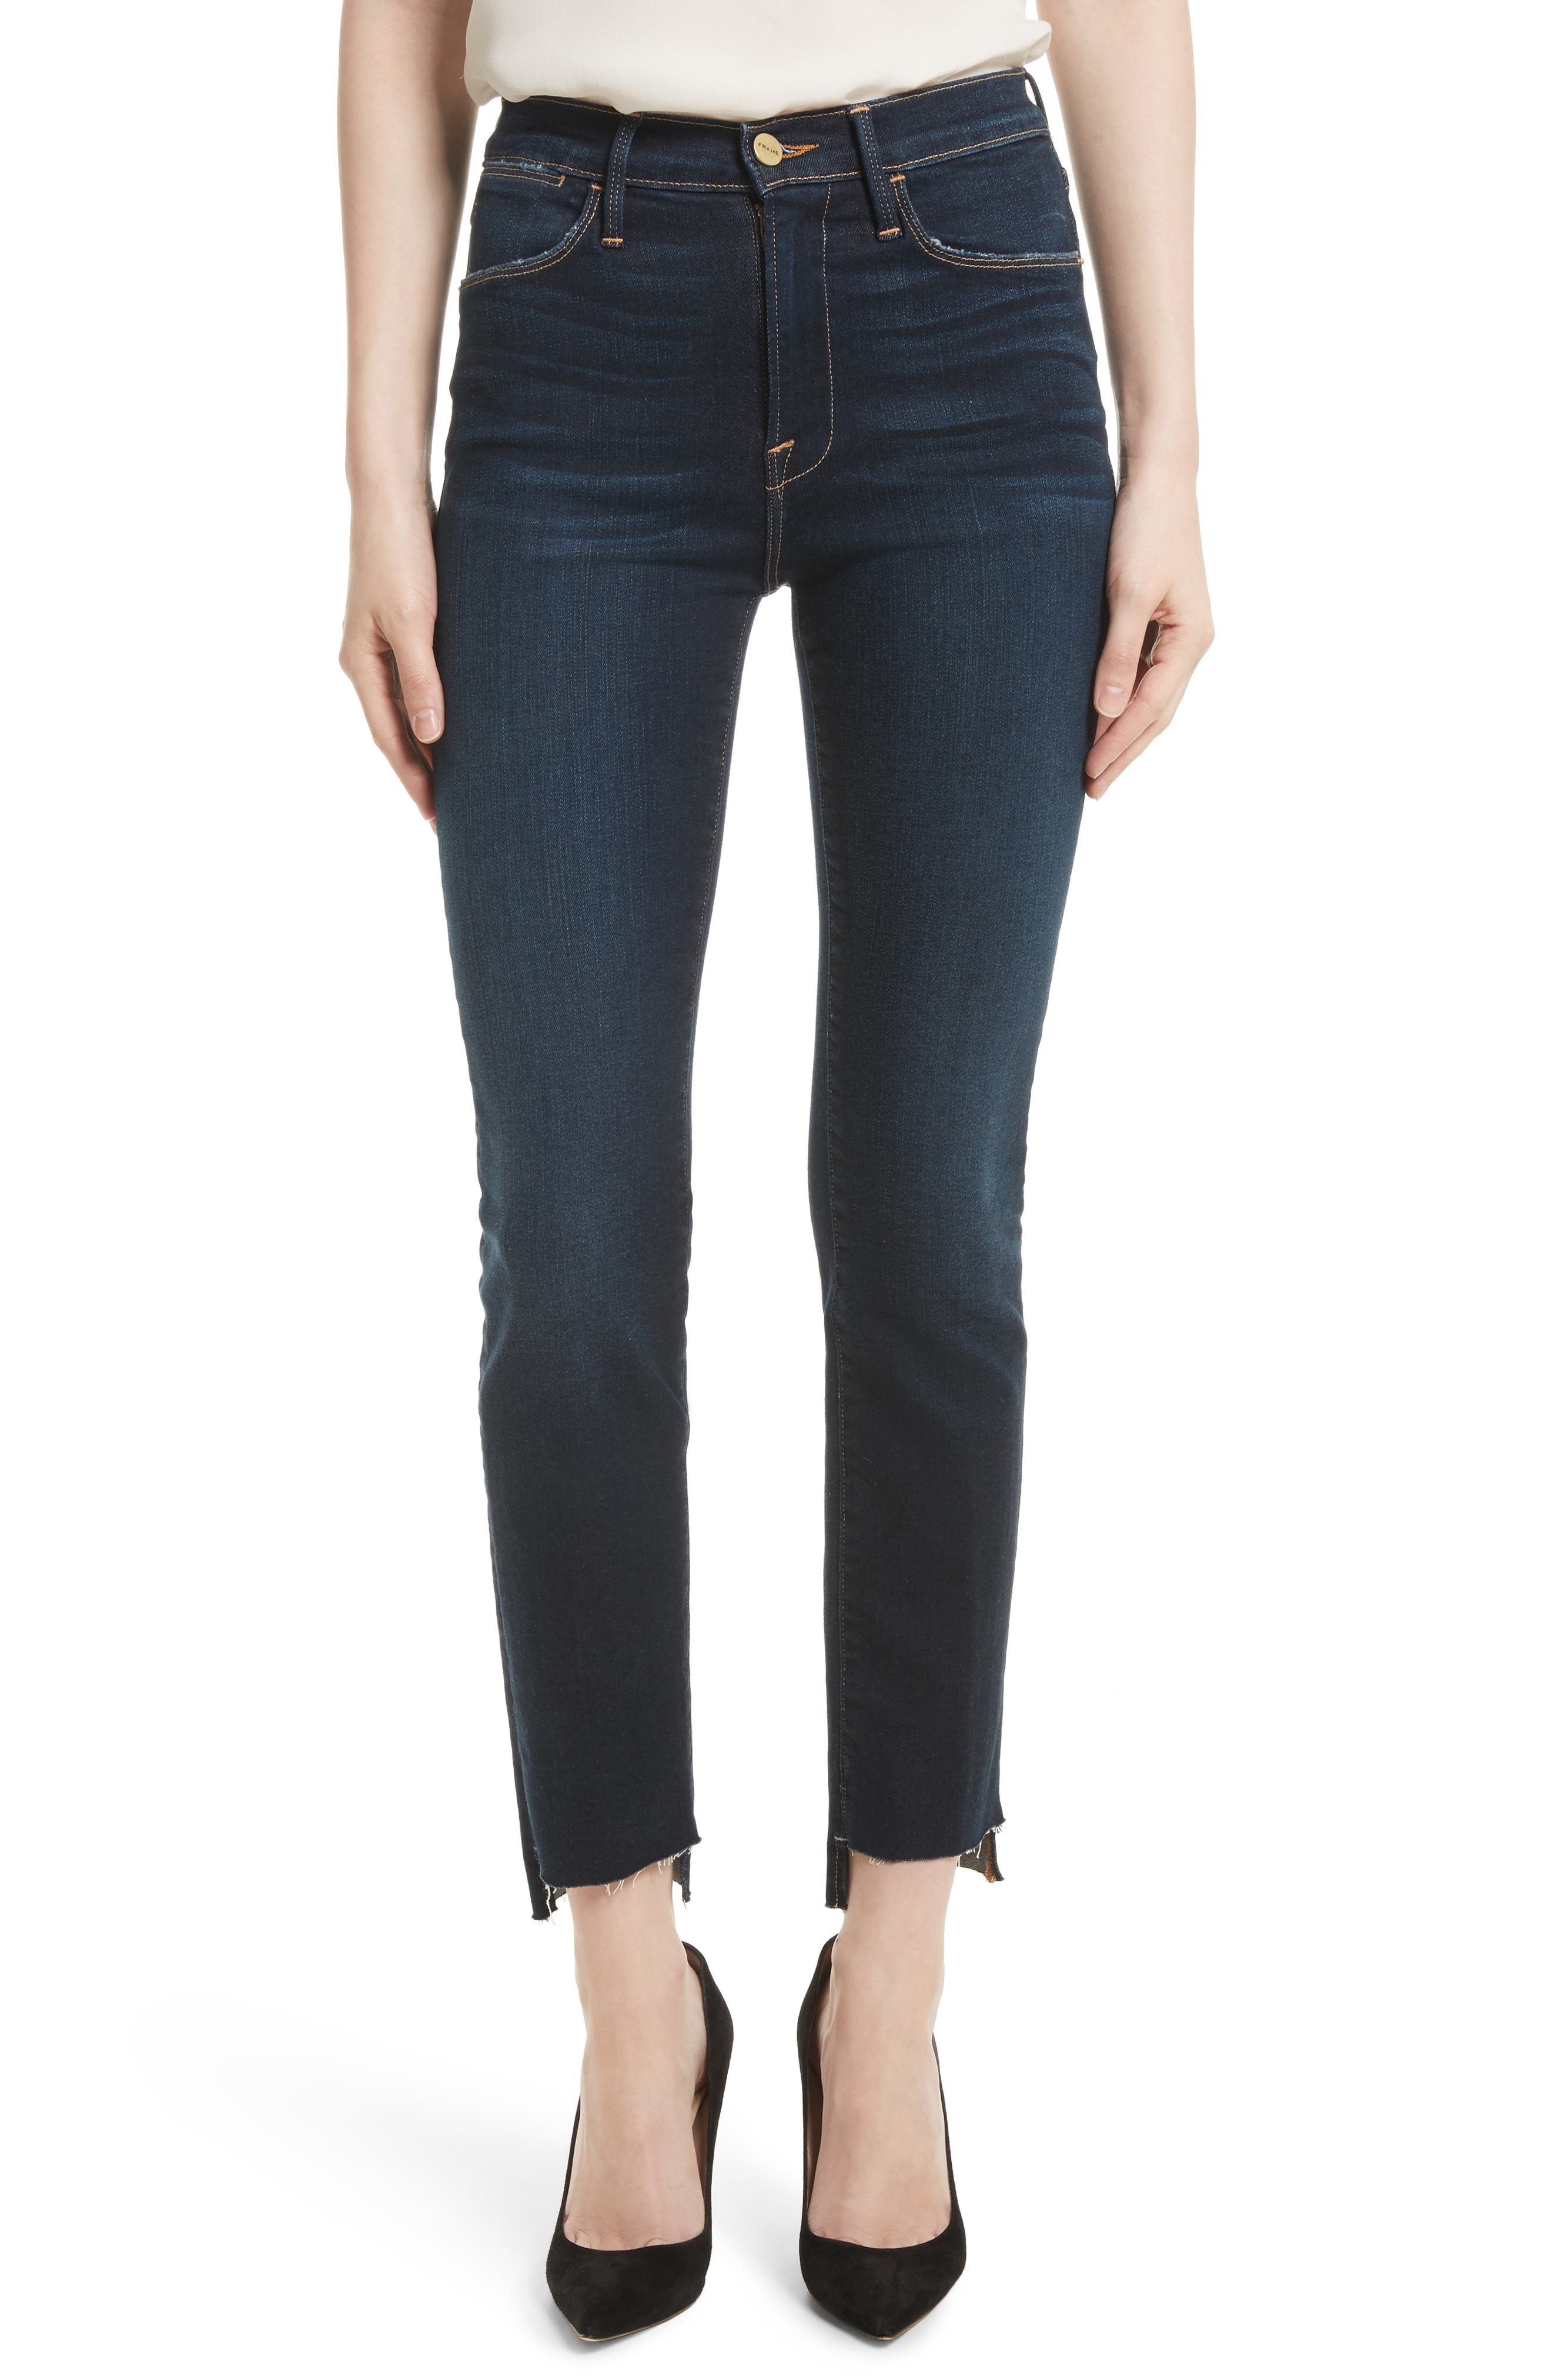 Main Image - FRAME Le High Straight Raw Stagger Jeans (Cabana) (Nordstrom Exclusive)